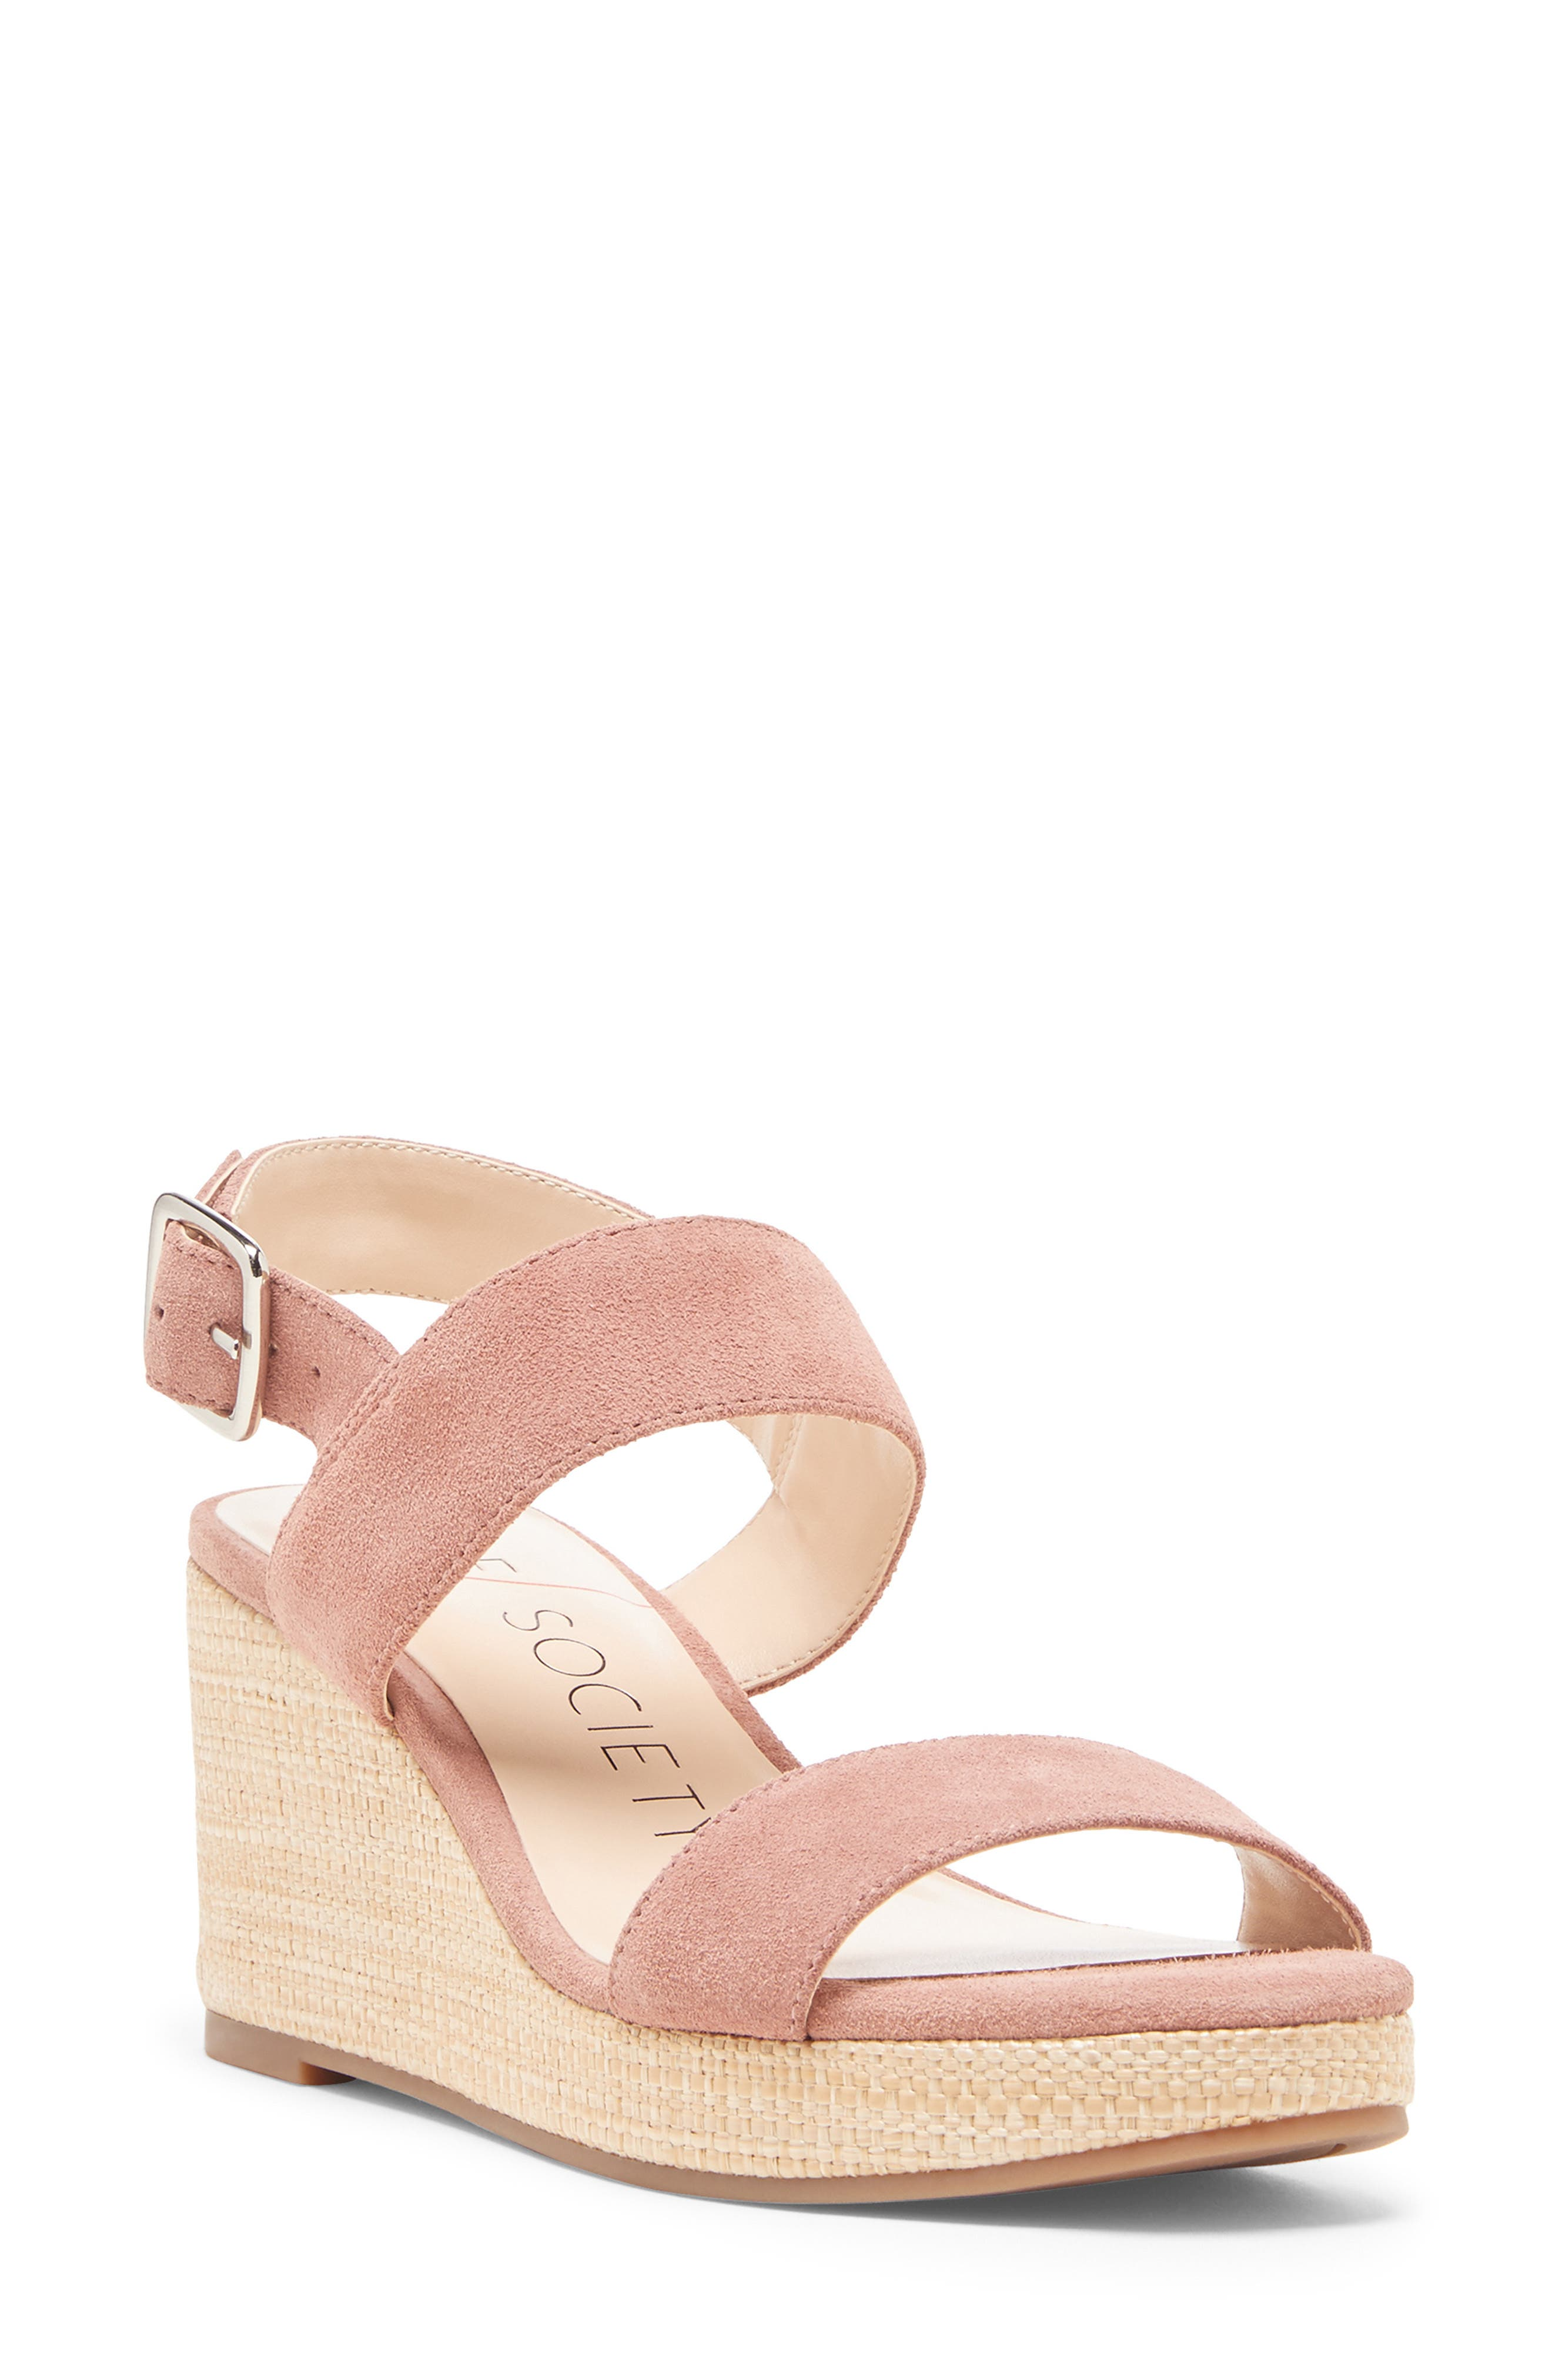 Sole Society Cimme Wedge Sandal Women Coupon Code